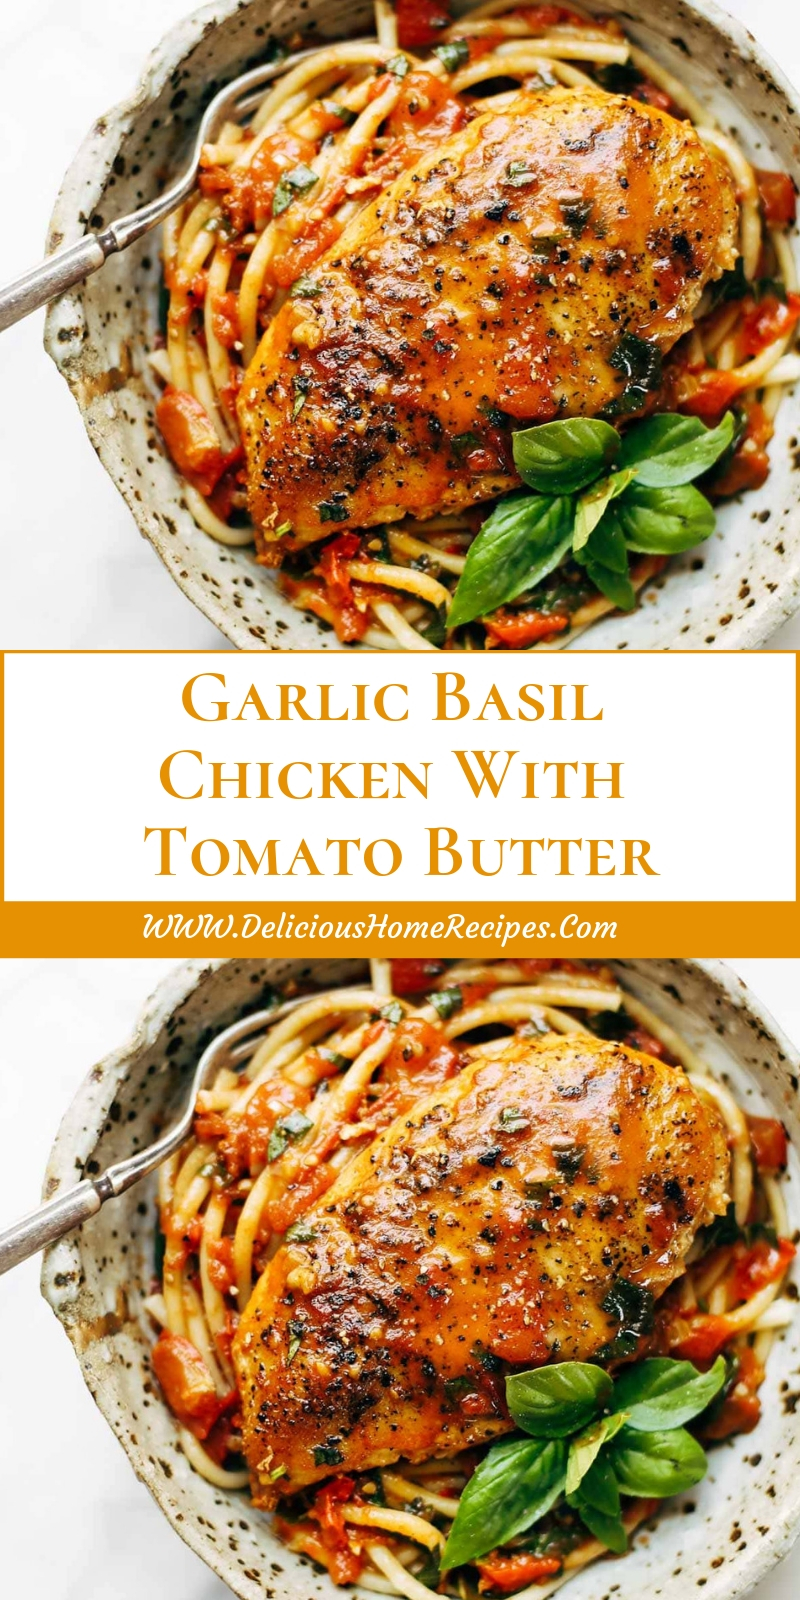 Garlic Basil Chicken With Tomato Butter